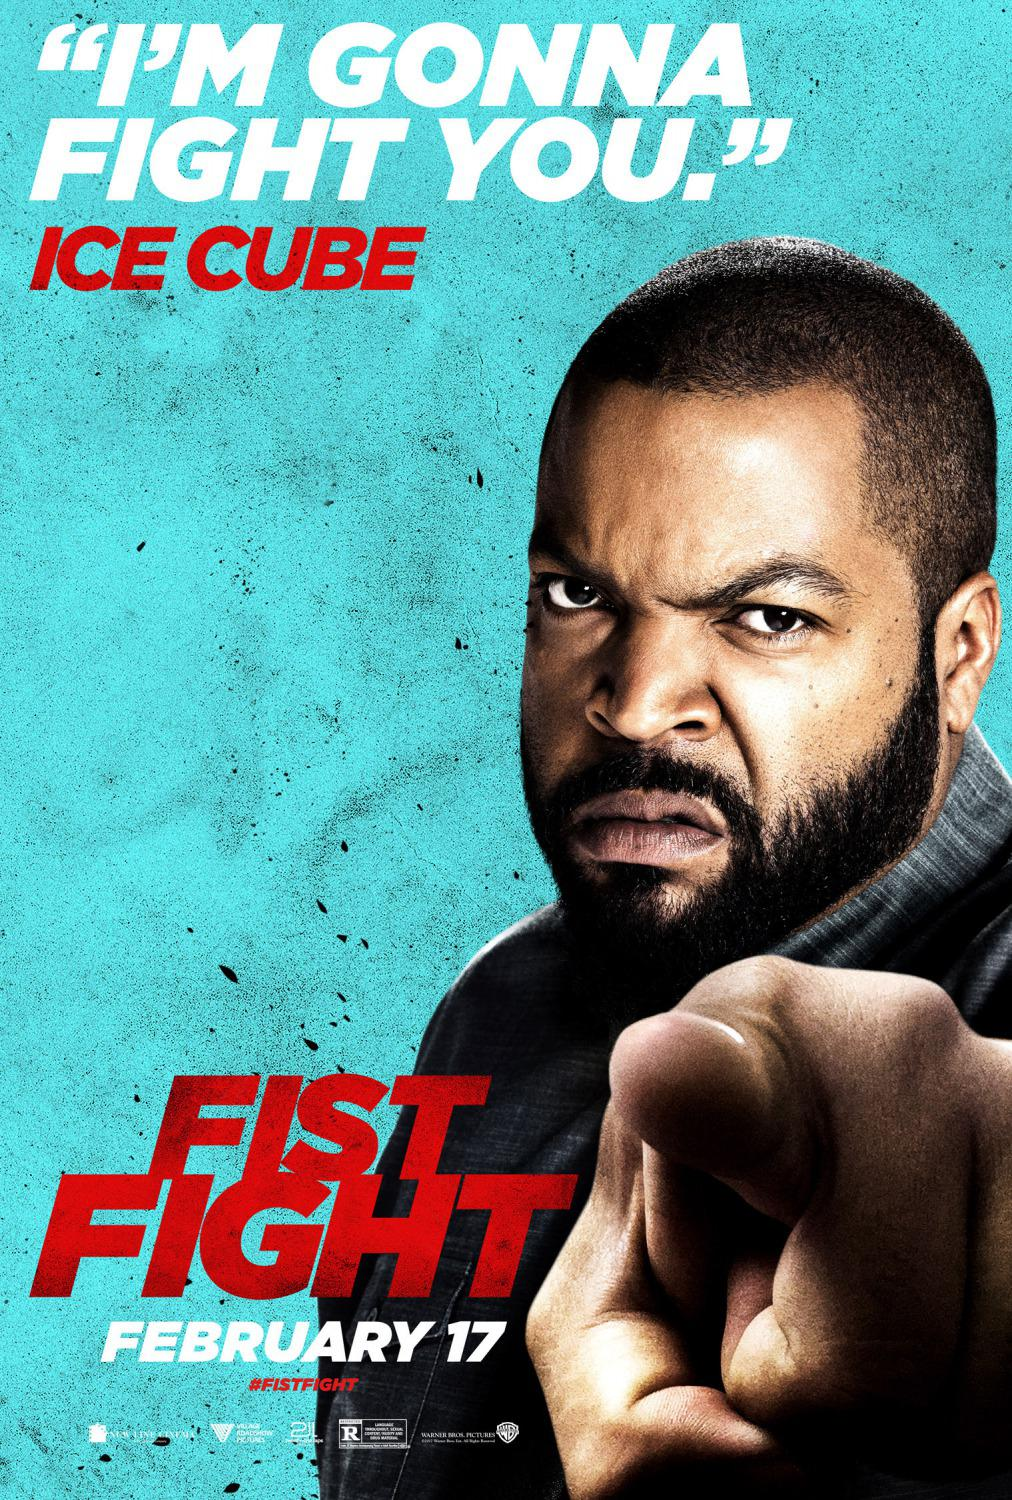 Fist Fight - I'm gonna fight you - Ice Cube